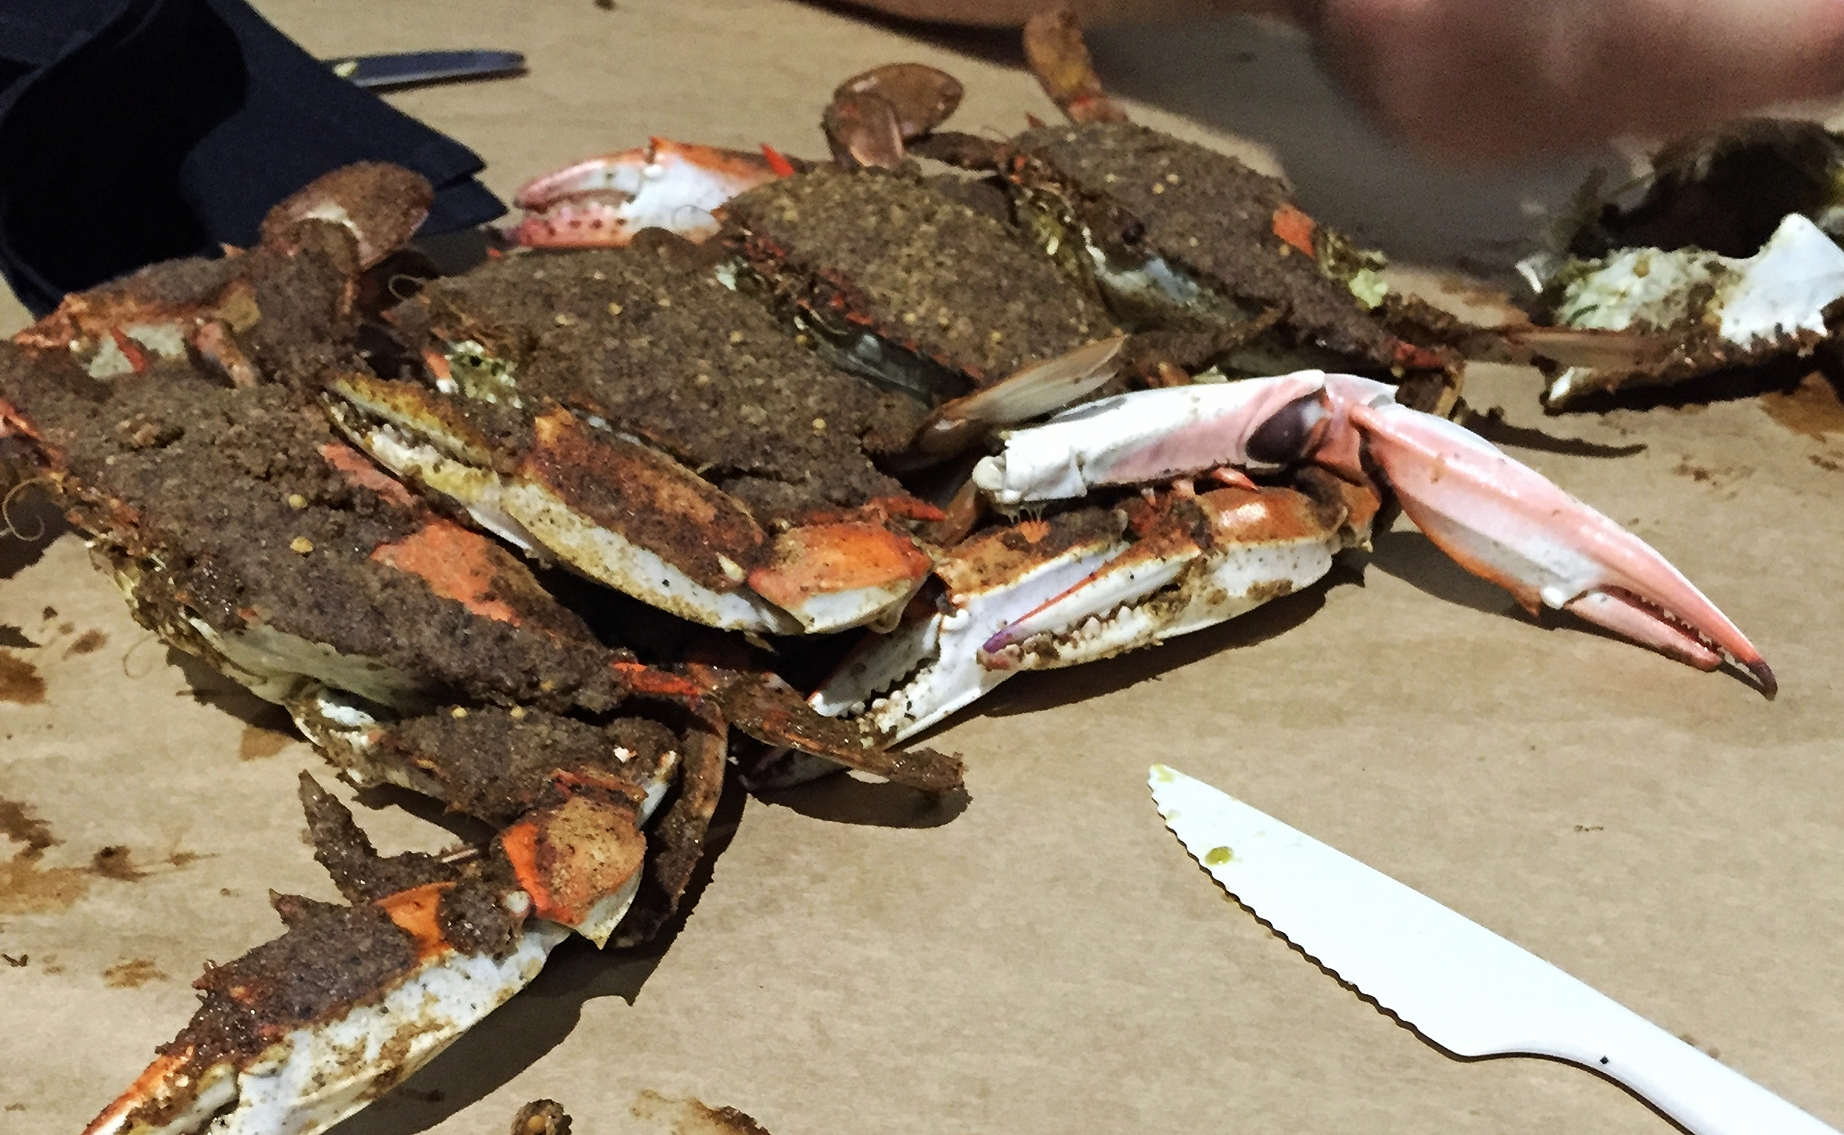 Enjoying Maryland crabs outside on a deck at a local restaurant